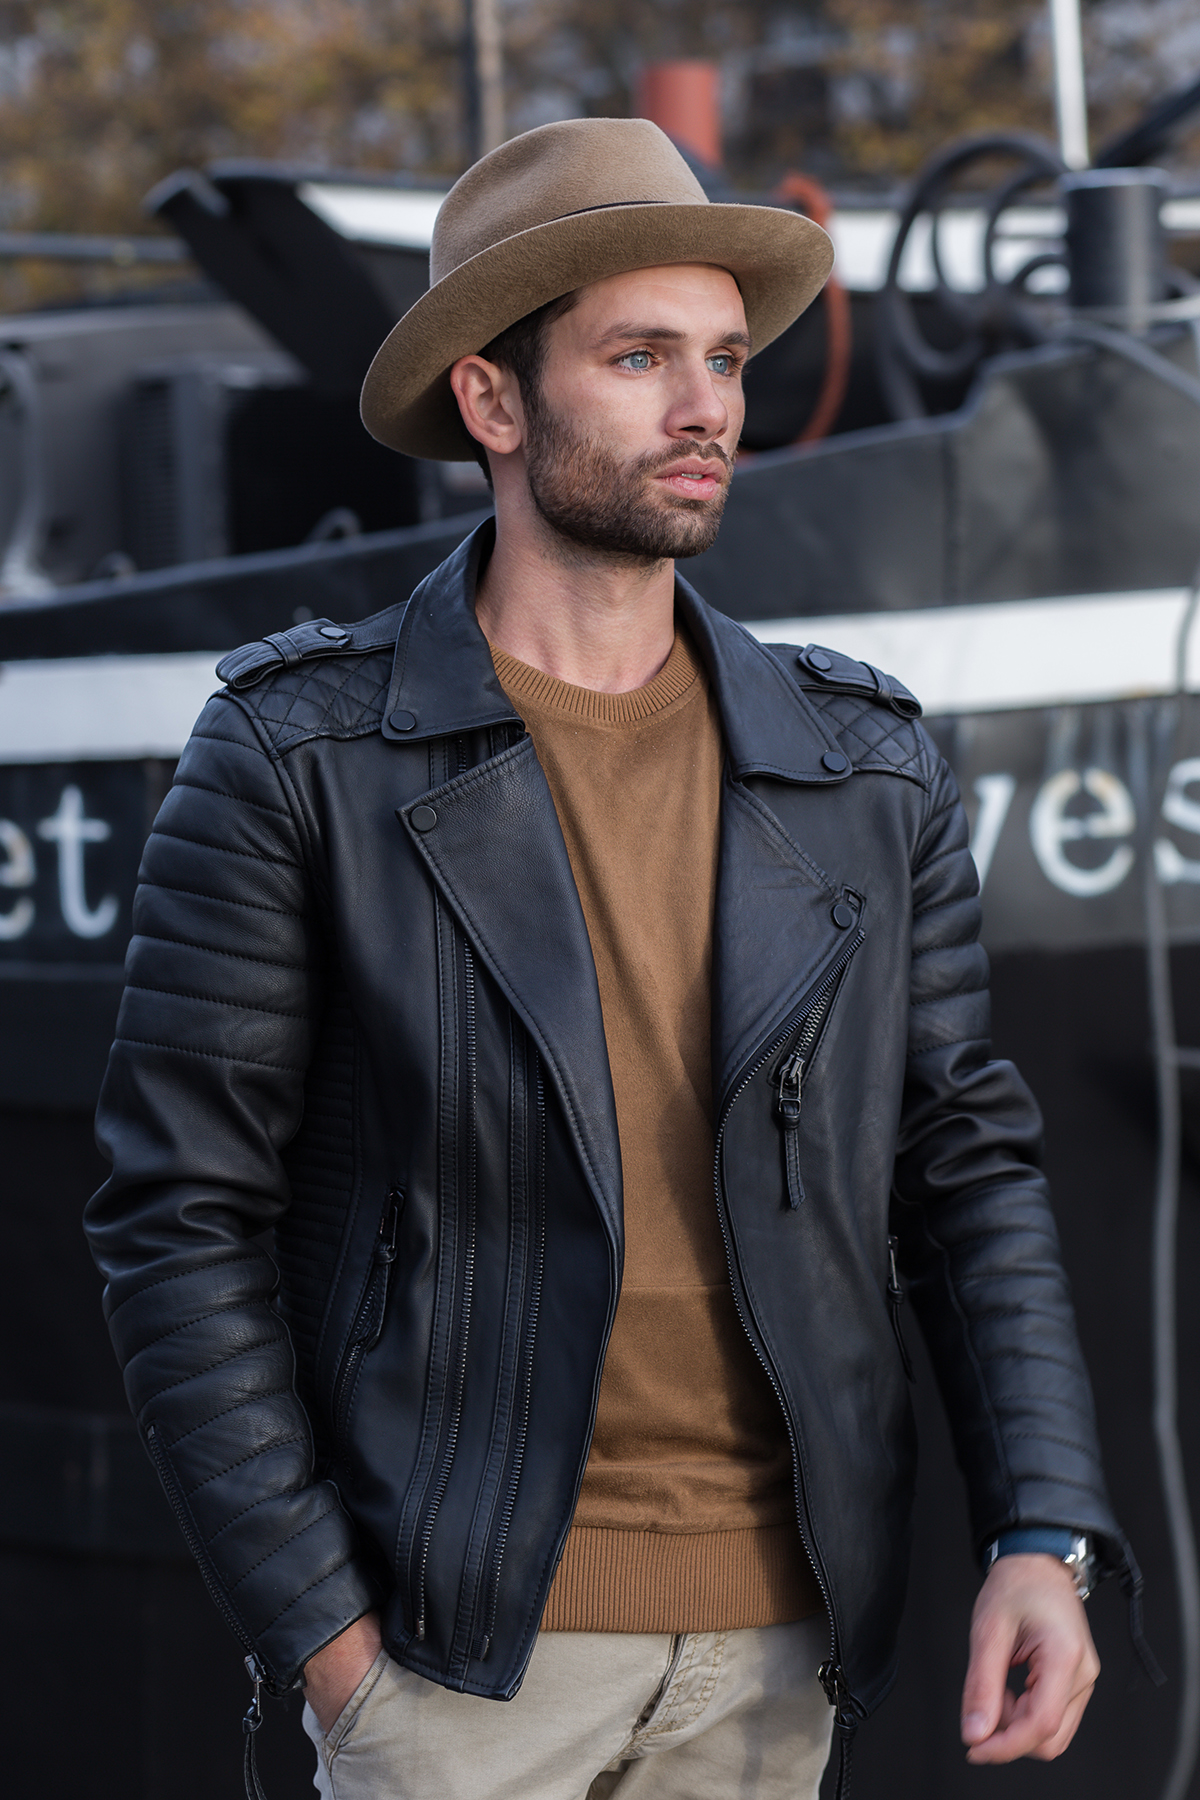 d8f98b82cc7bc Hat Style in Tom Smarte - Nathanyel Bns